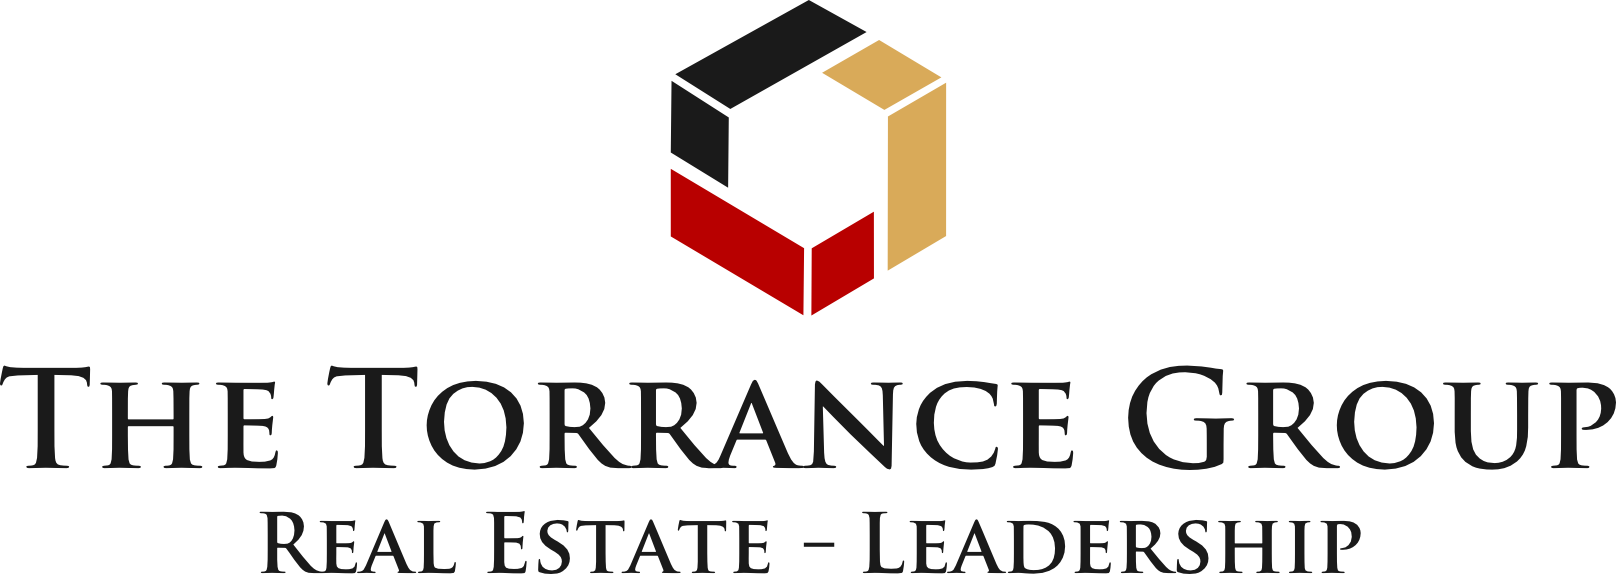 Torrance group logo2web %281%29